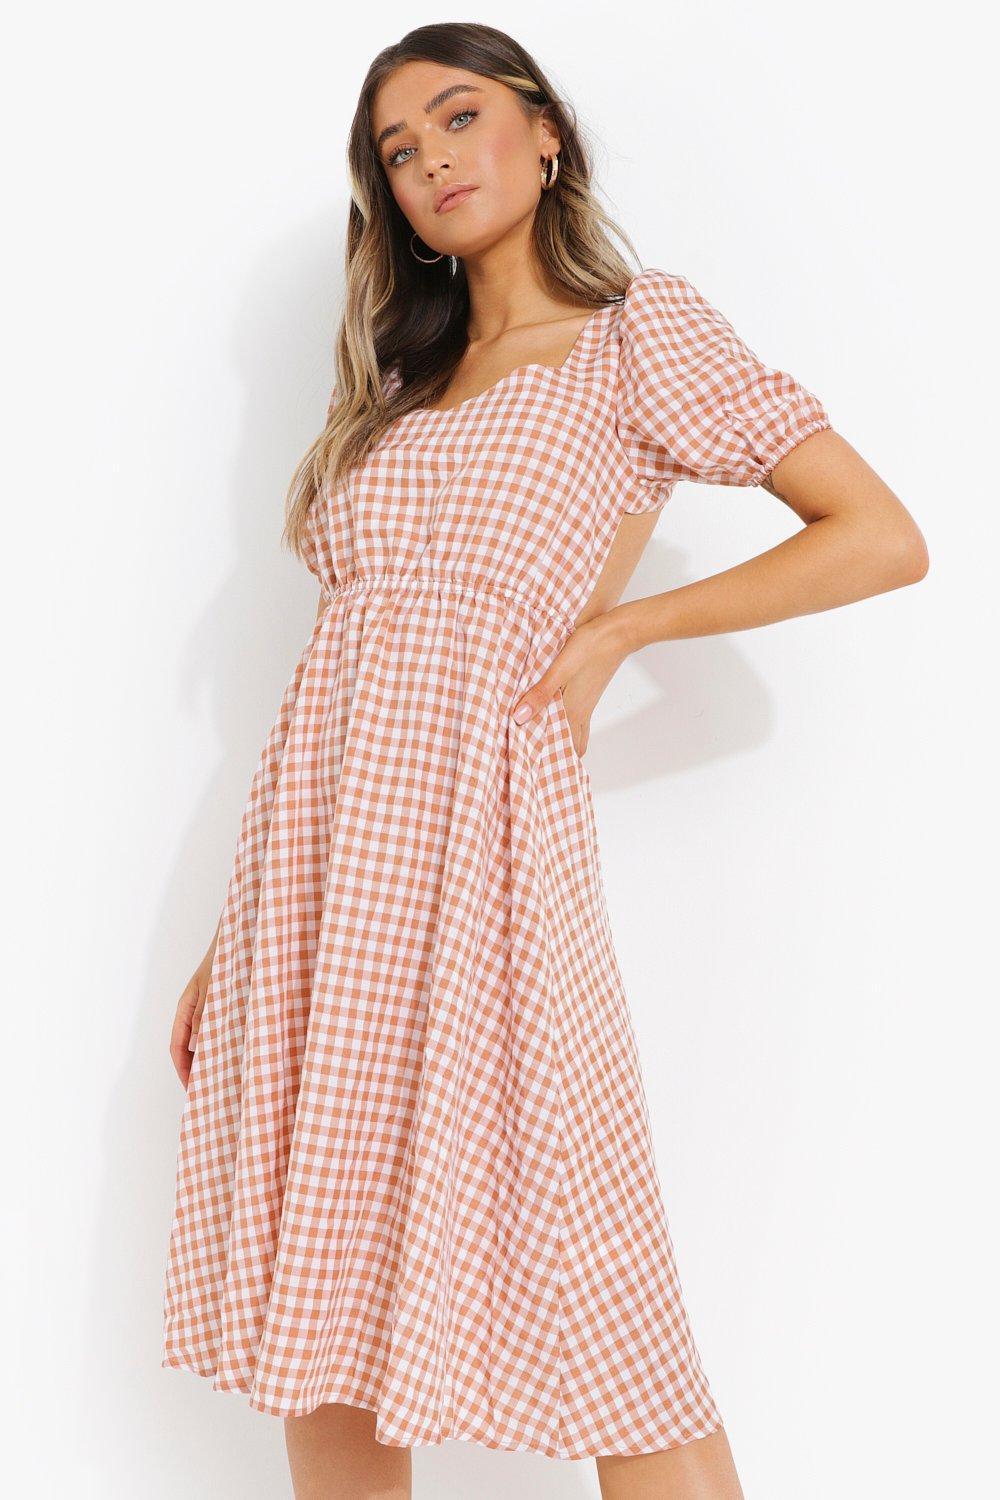 Cottagecore Clothing, Soft Aesthetic Womens Puff Sleeve Tie Back Midi Smock Dress - Brown - 14 $20.00 AT vintagedancer.com